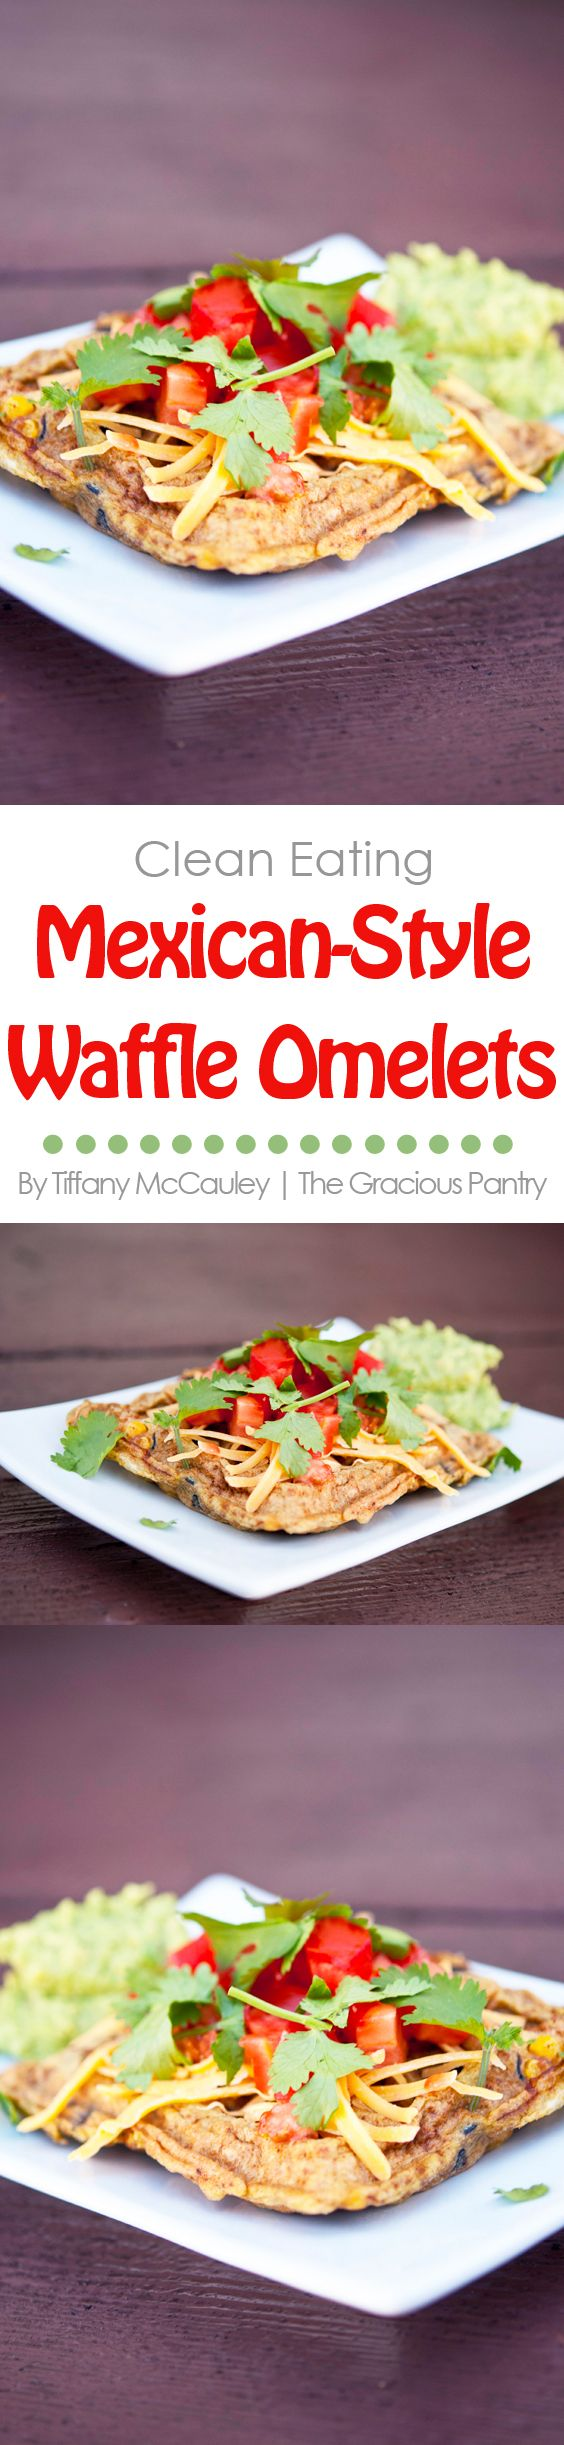 Clean Eating Recipes | Clean Eating Waffles | Clean Eating Omelet | Clean Eating Breakfast Recipes